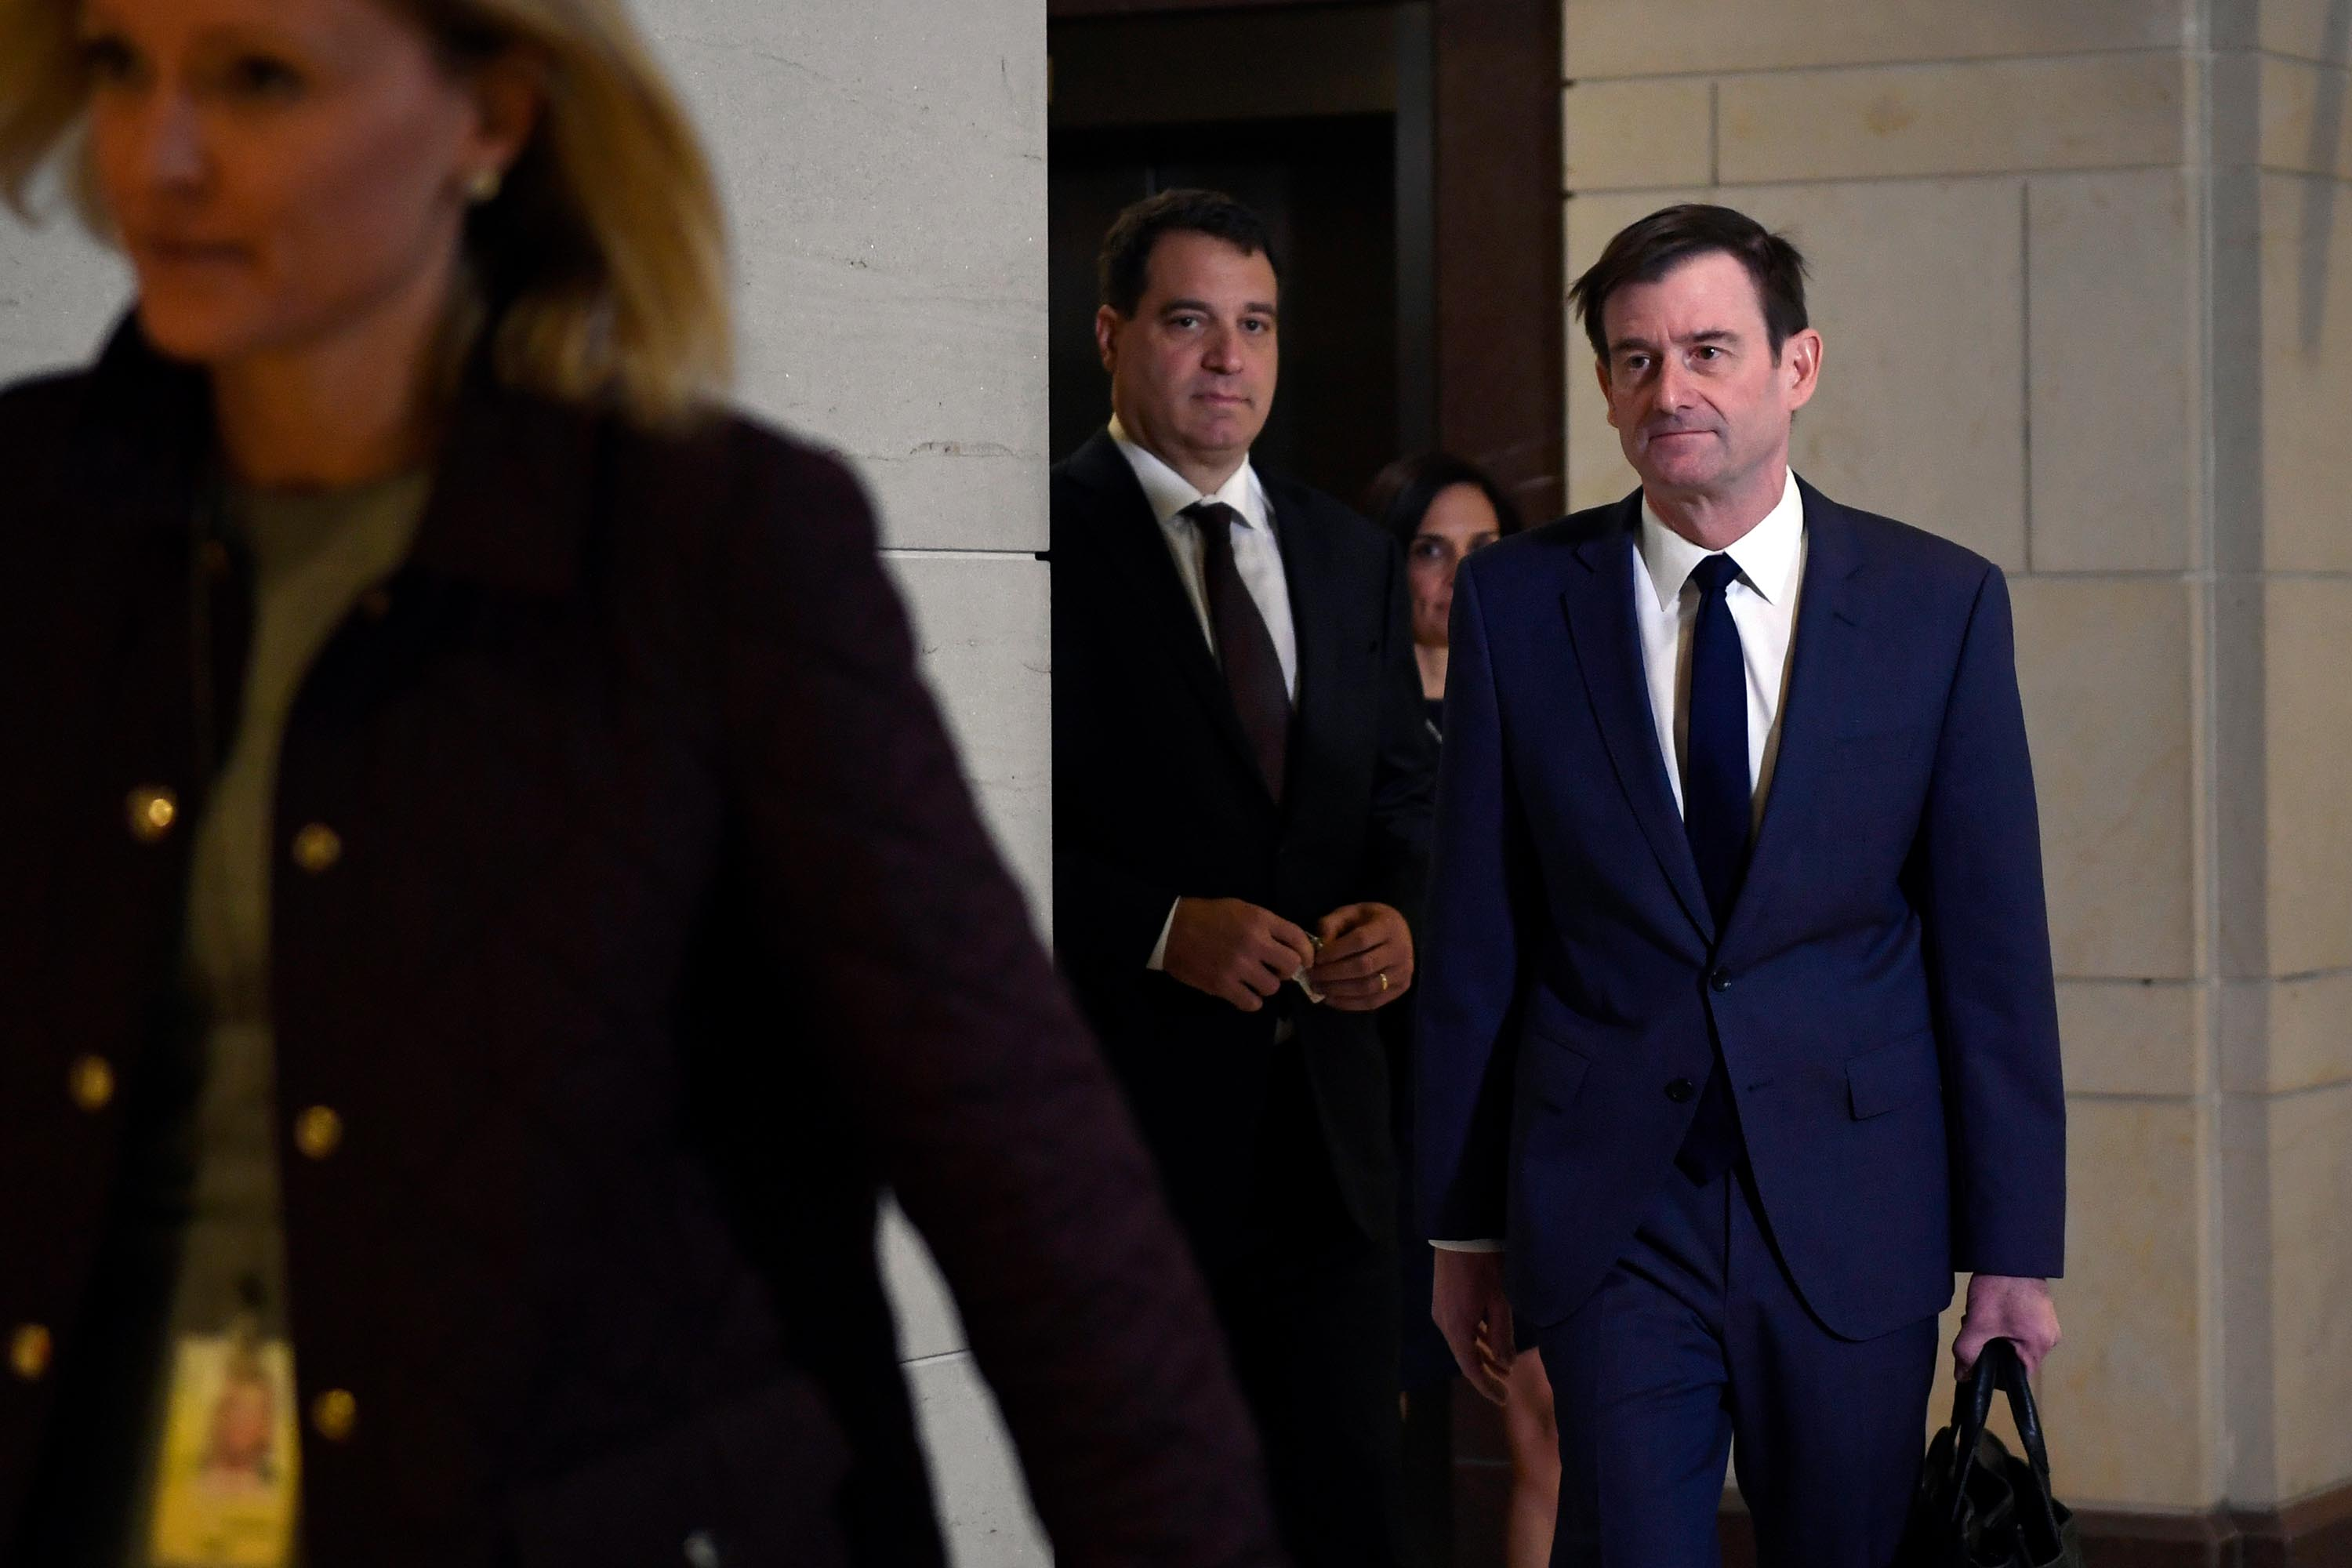 David Hale, right, arrives on Capitol Hill, Wednesday, November 6.